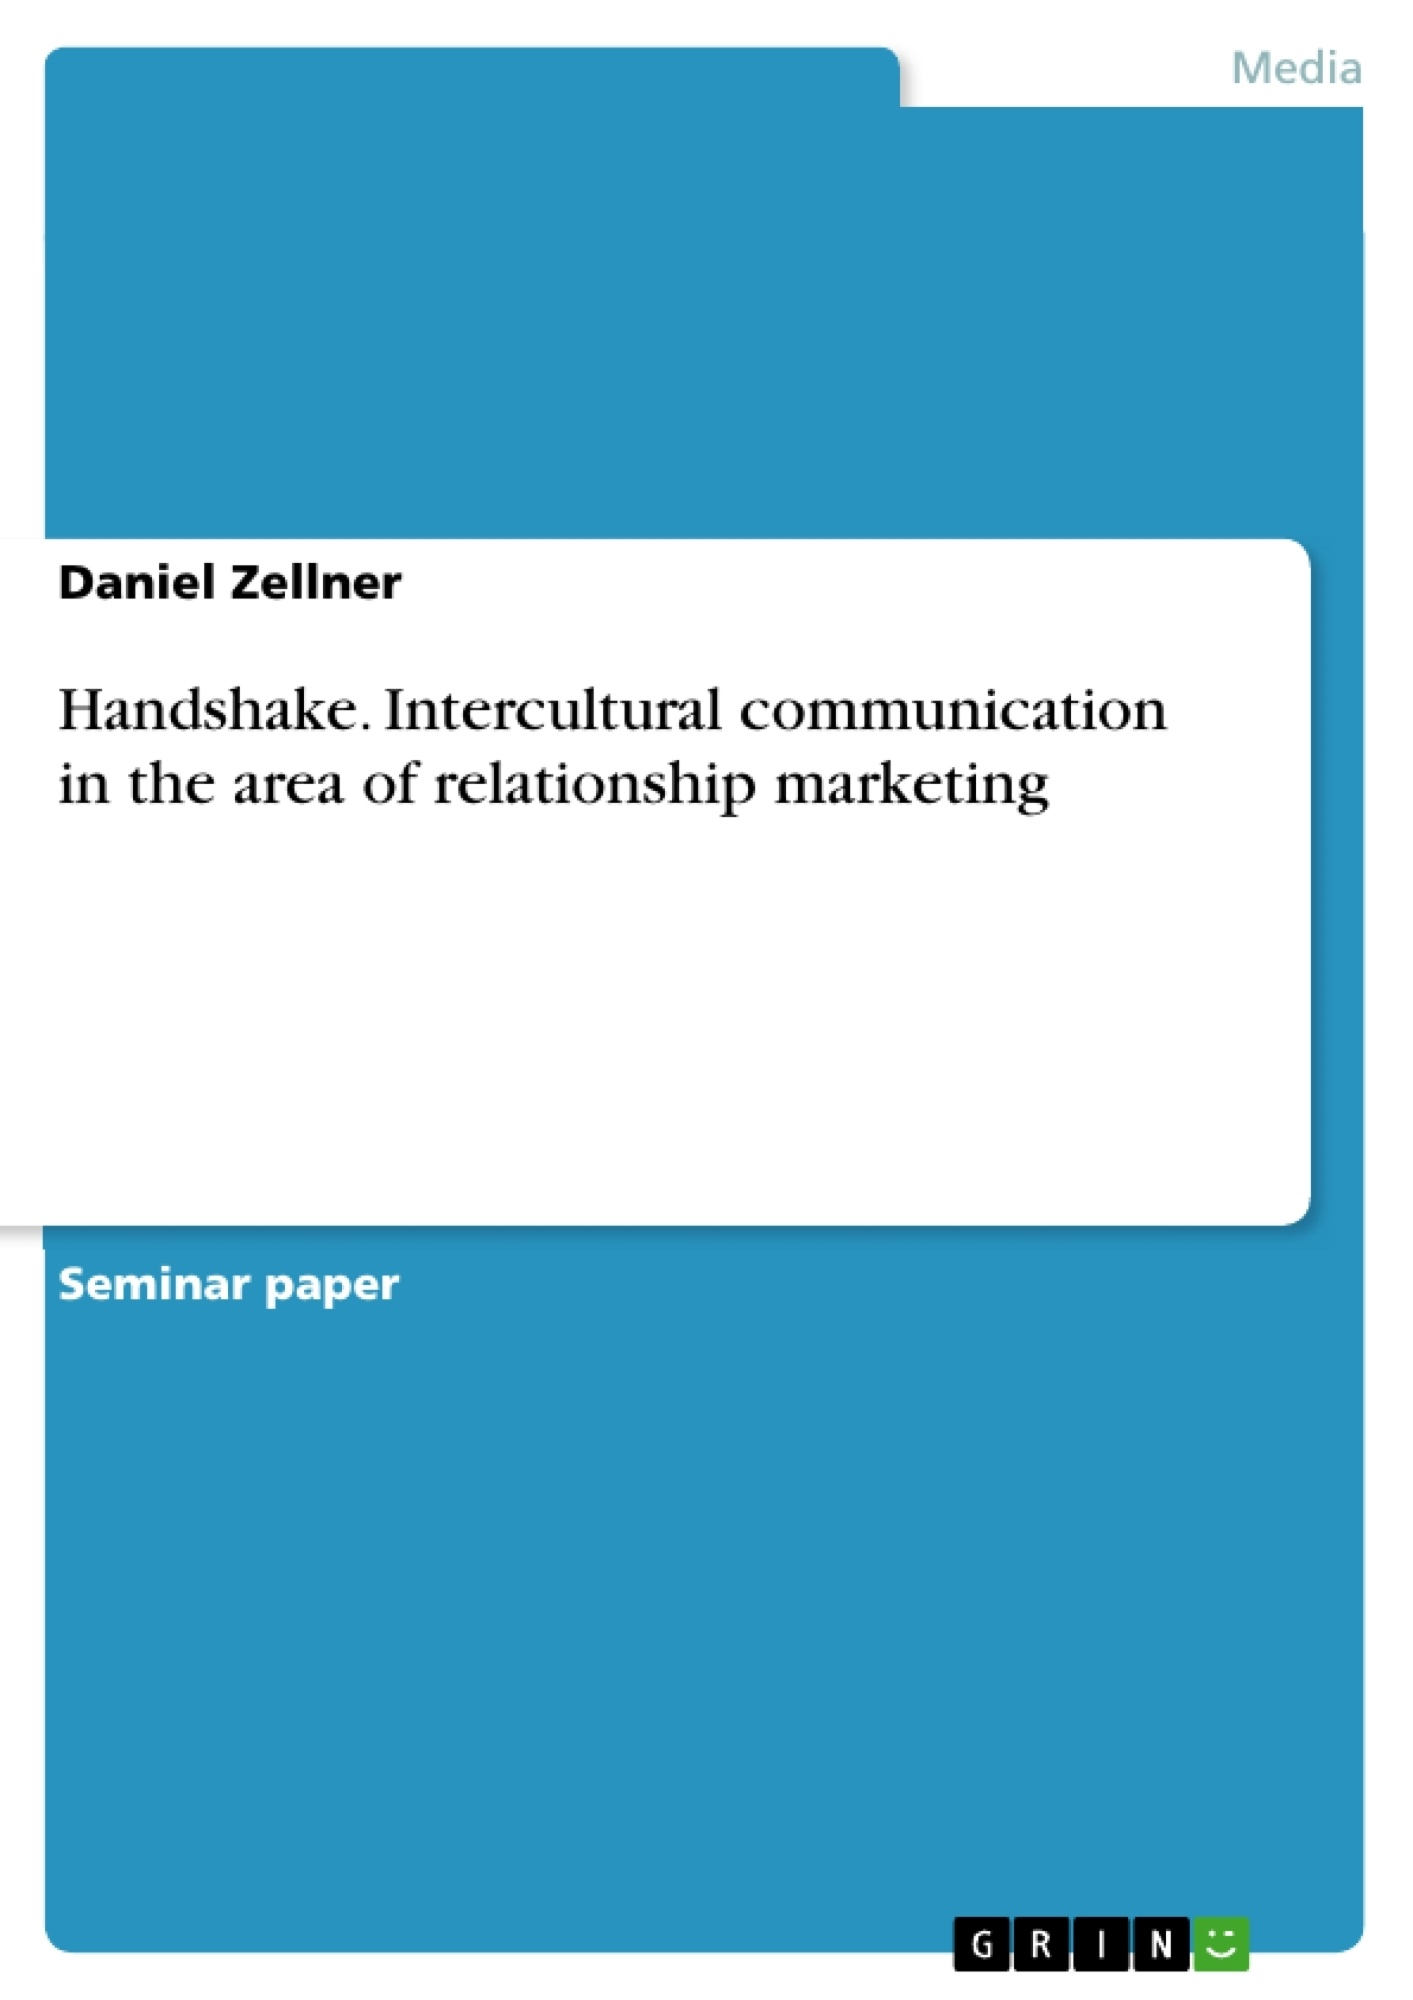 Title: Handshake. Intercultural communication in the area of relationship marketing